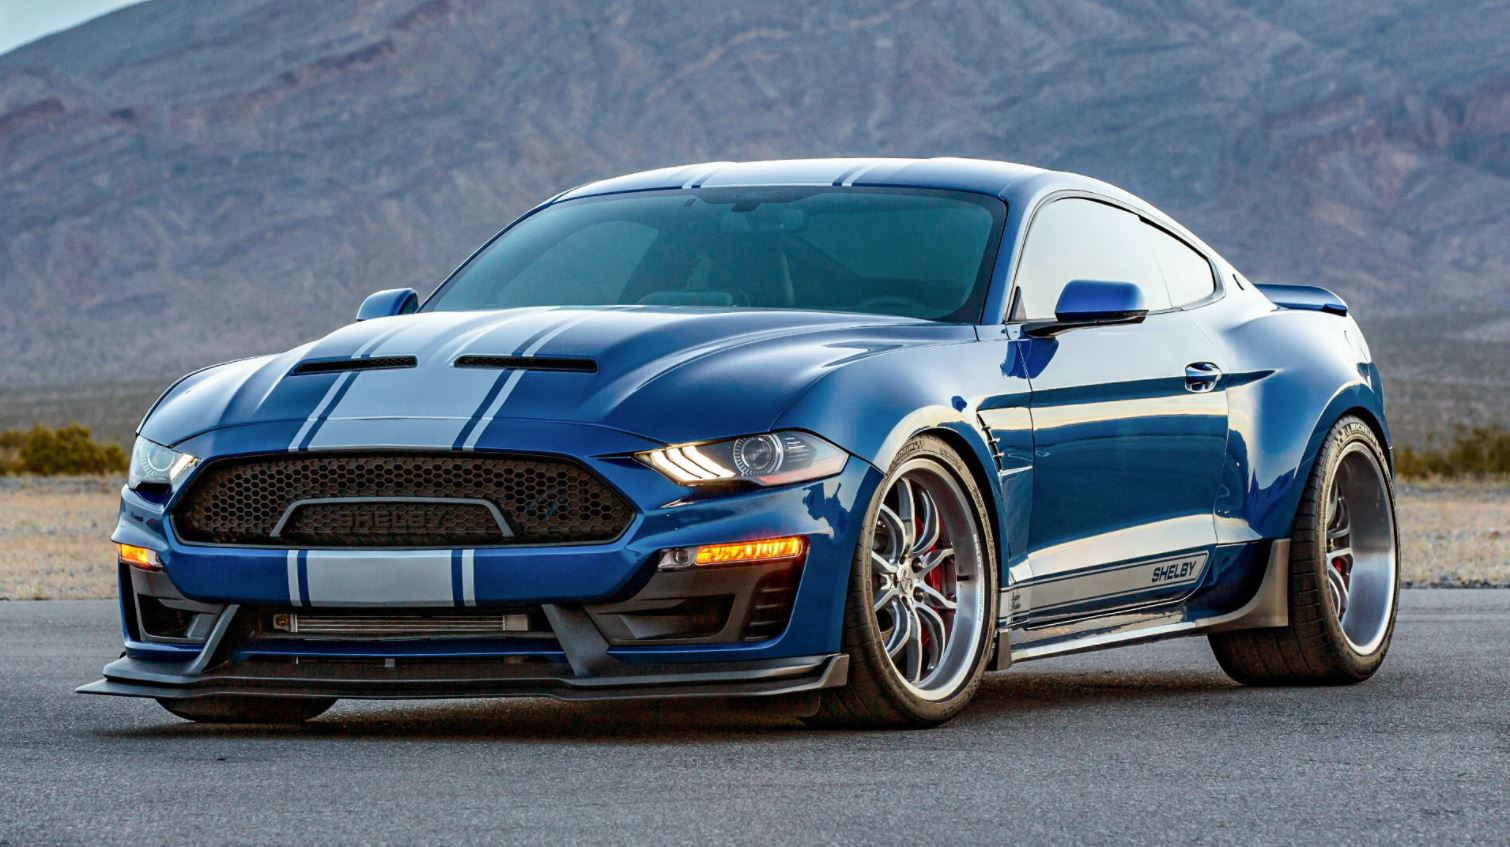 The Mustang Widebody